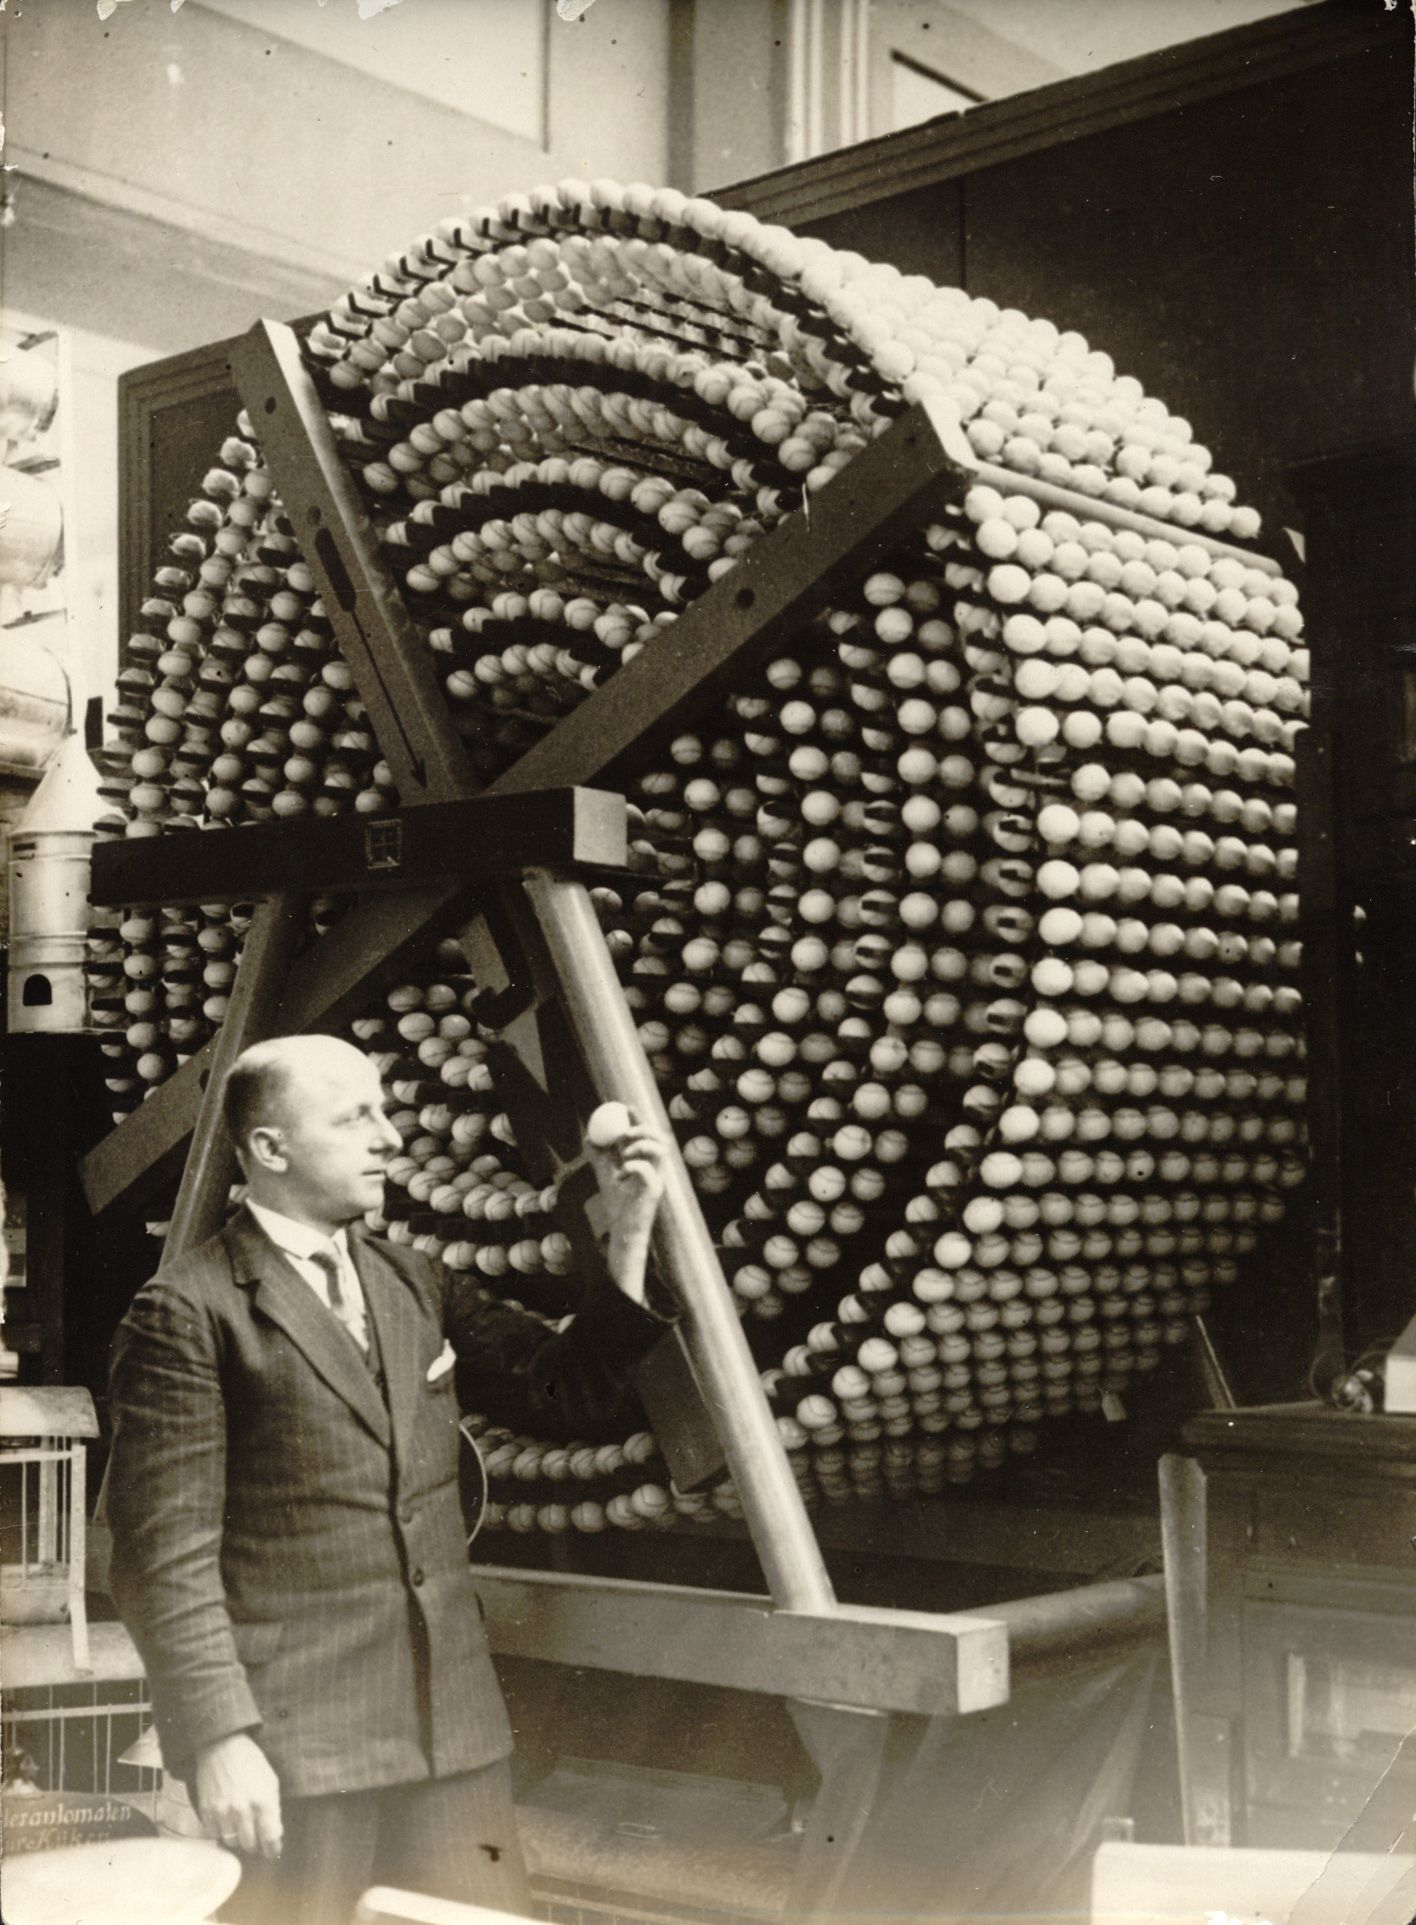 1930:   Container for keeping 5,000 fresh eggs for more than a year